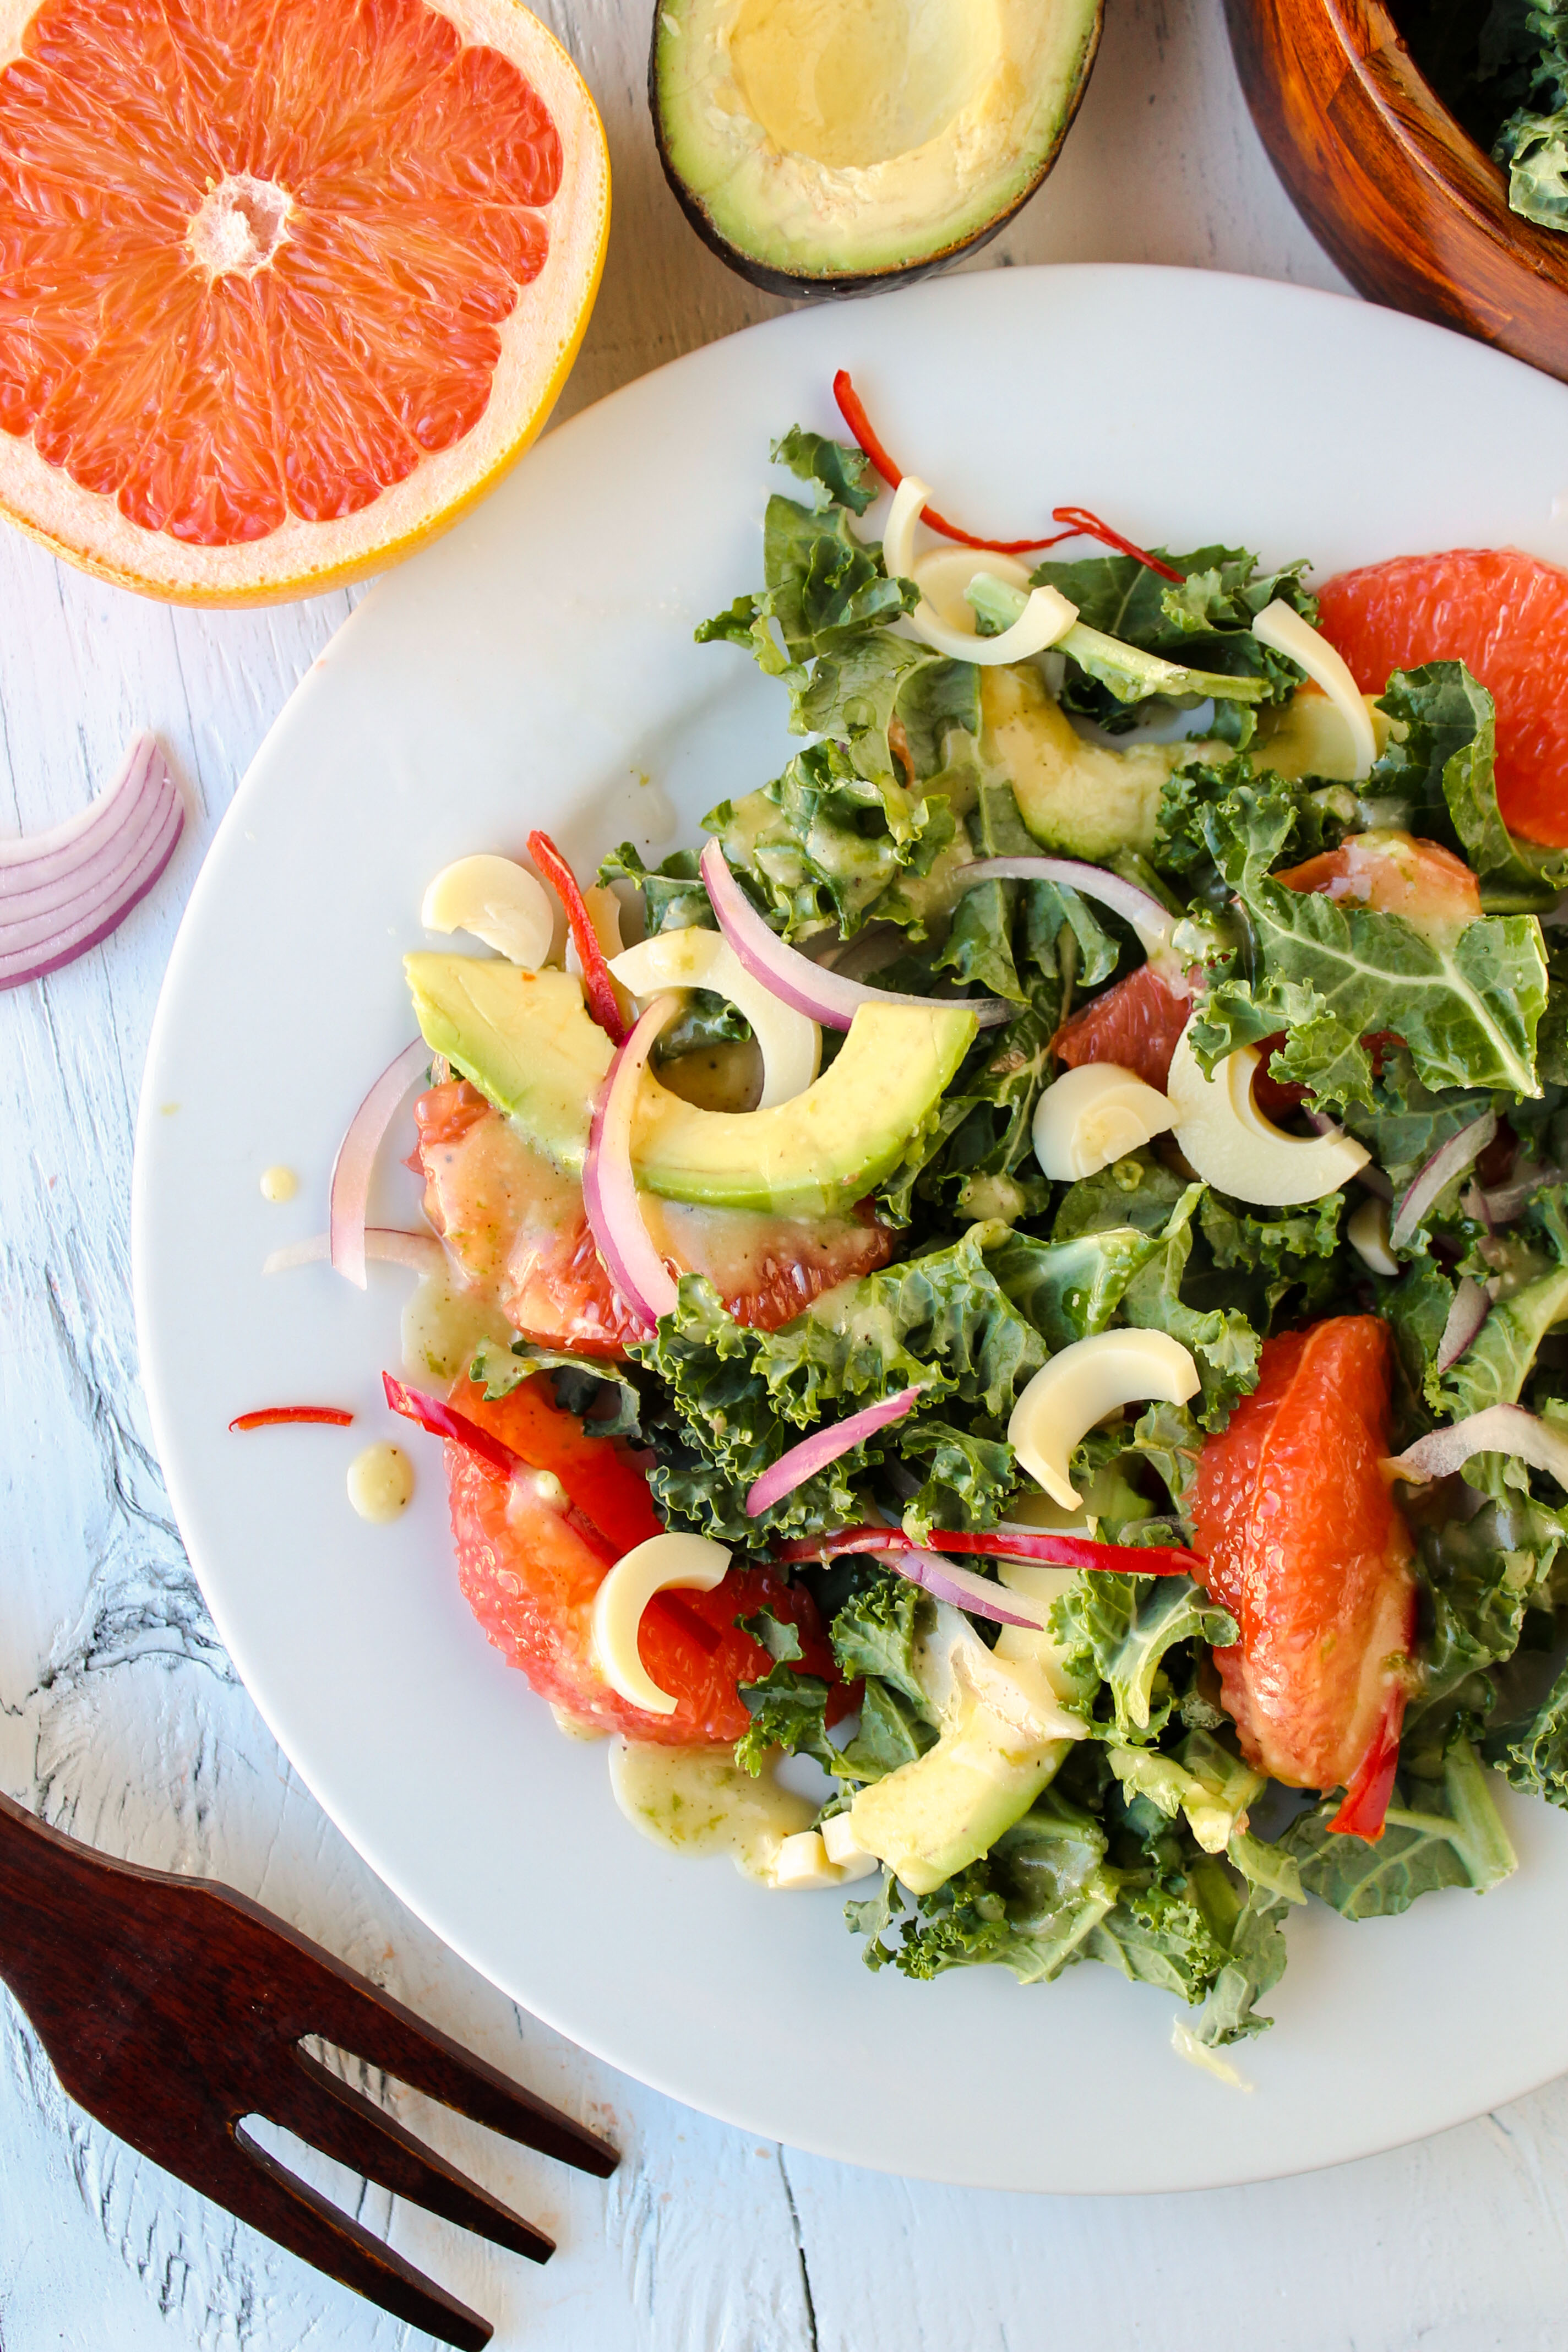 Grapefruit kale hearts of palm salad the food charlatan grapefruit kale hearts of palm salad forumfinder Gallery